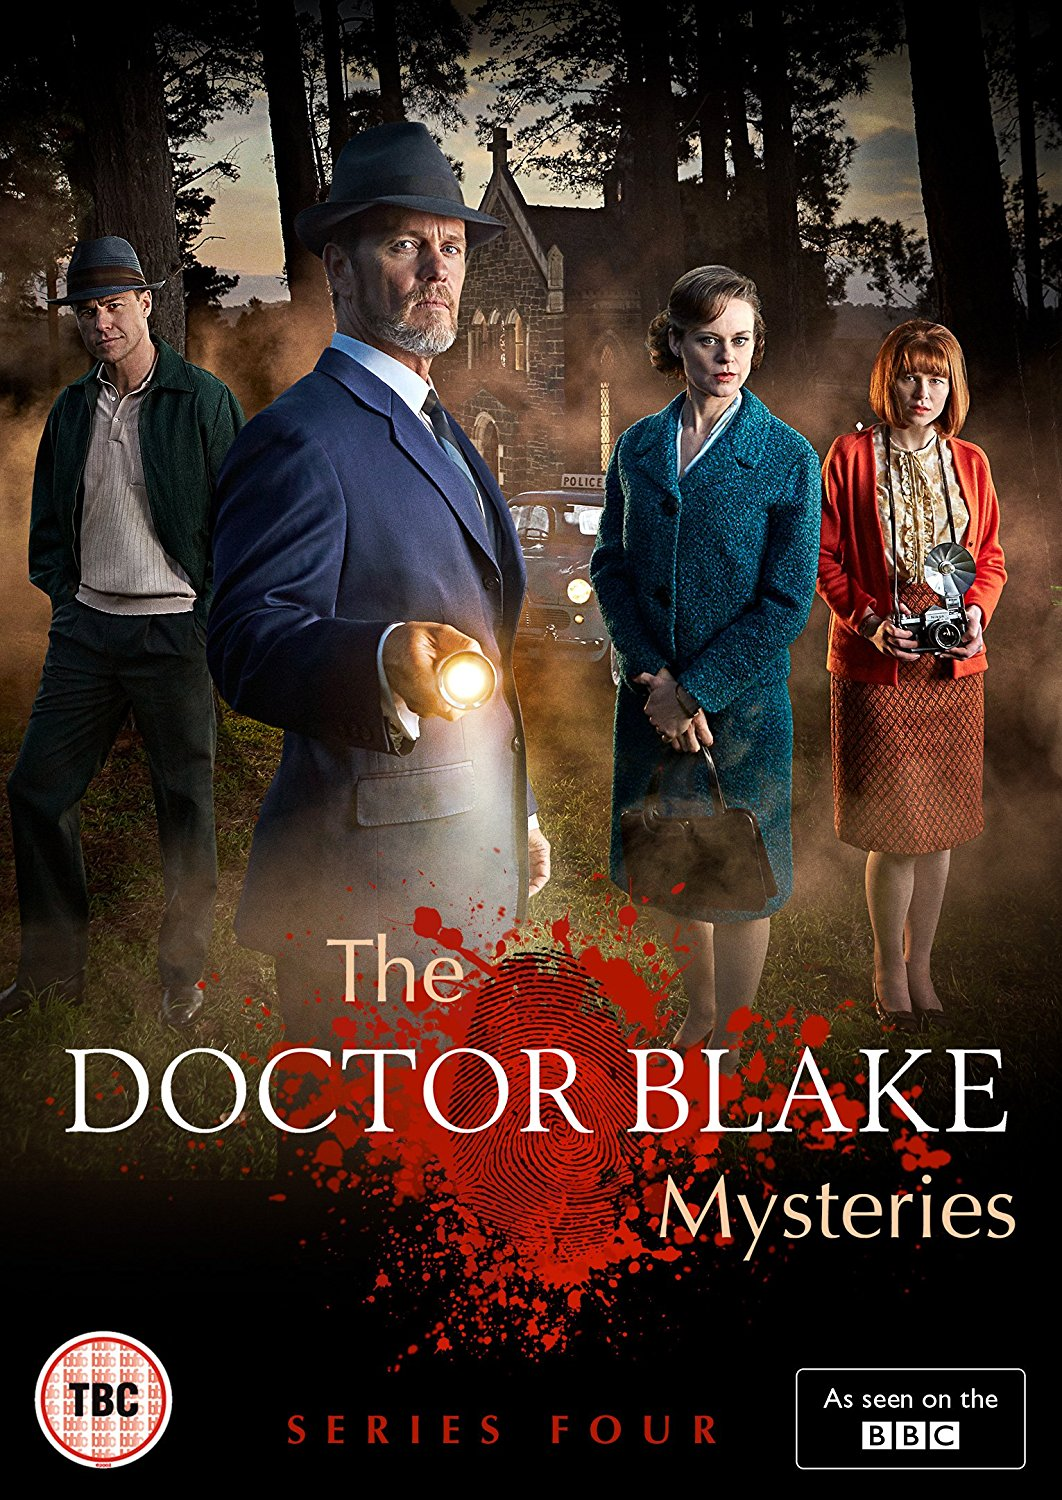 The Doctor Blake Mysteries Season Four - 20158 x 60 minDrama seriesDecember Media/ABC TV AustraliaDoctor Lucien Blake (Craig McLachlan) and his housekeeper and confidant Jean Beazley (Nadine Garner) have returned to Ballarat, ready to finally pursue their romantic feelings towards one another. But their arrival coincides with the attack on someone extremely close to them, creating a life-threatening situation that will shake them both to their very core. And just as they're trying to recover from this, Blake is shocked by the sudden appearance on his doorstep of a mysterious figure from a life he can barely remember.